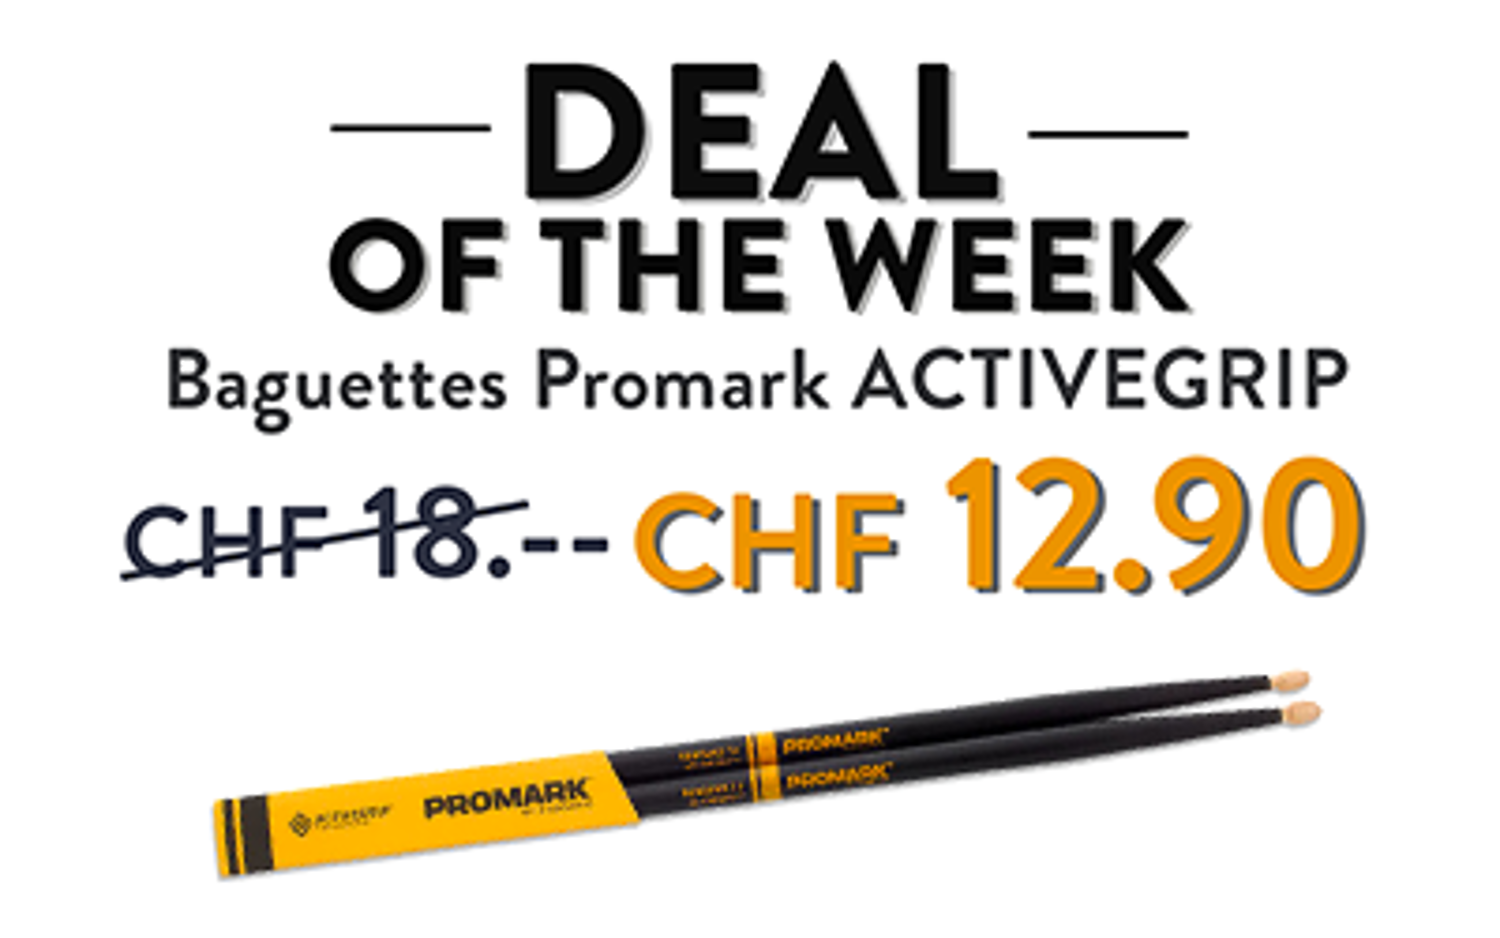 Promark ACTIVGRIP : Deal Of The Week